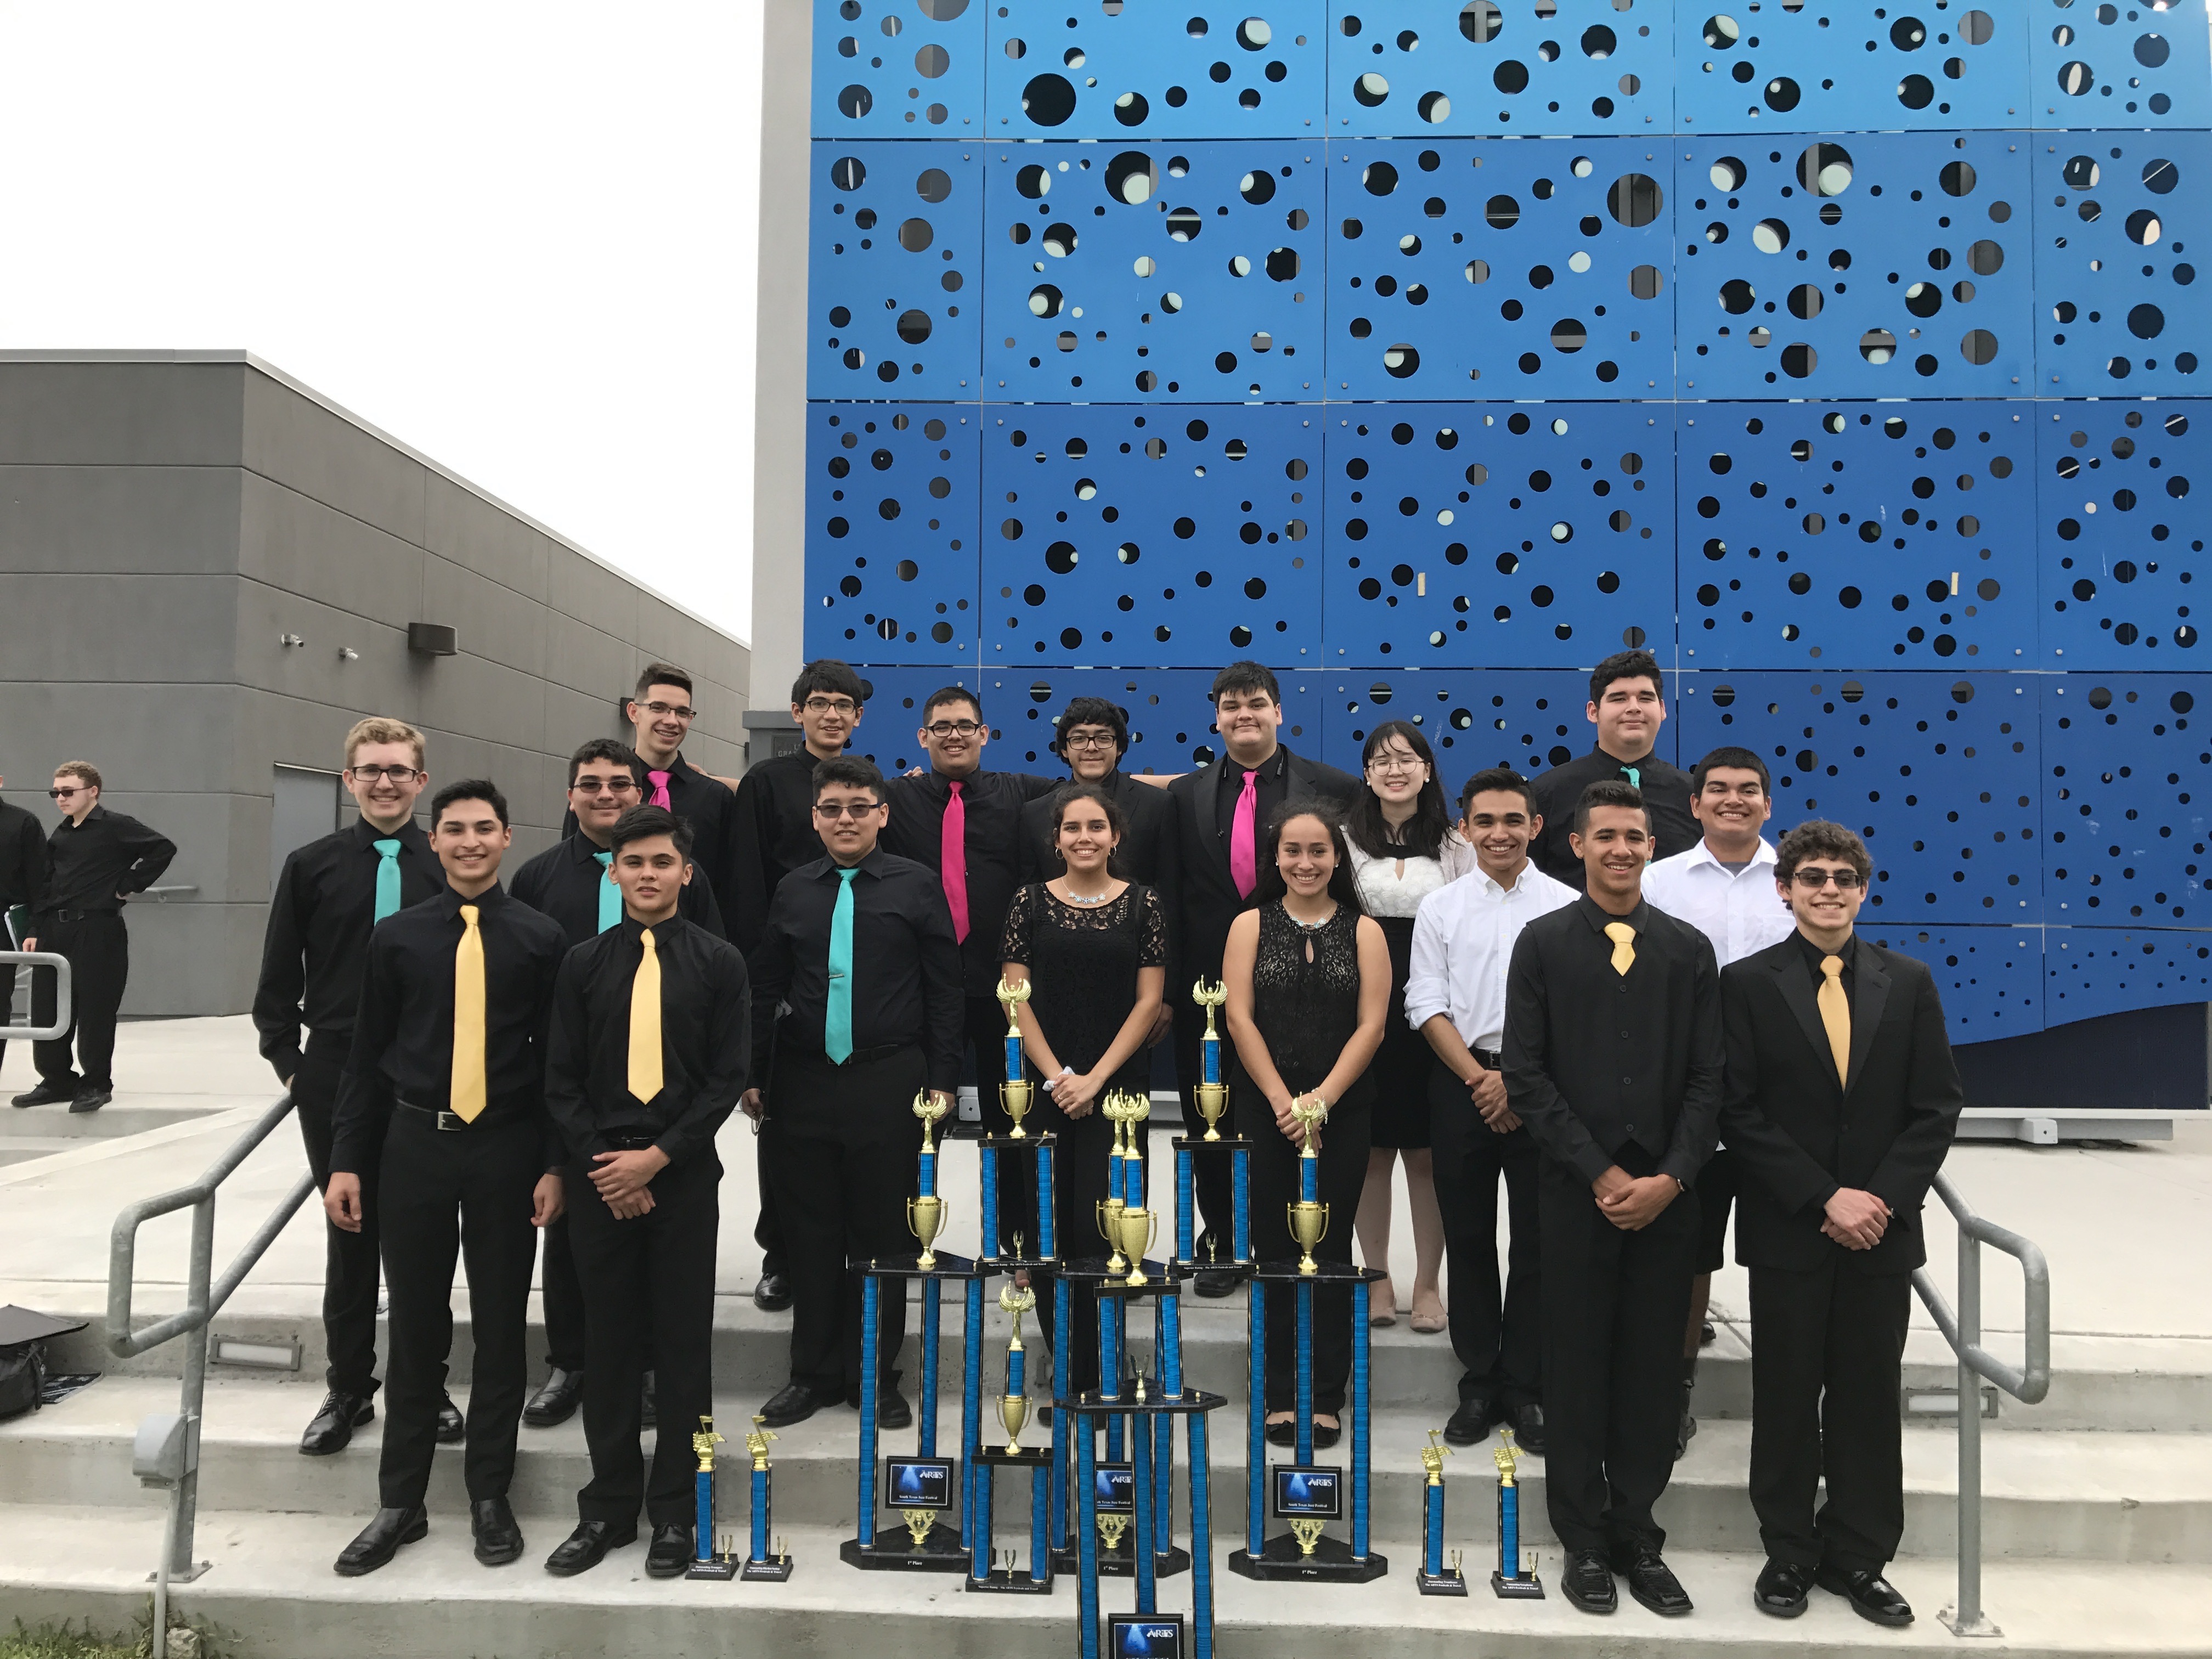 HHSS Jazz Ensembles, Salsa group, Winter Guard come out on top at contests